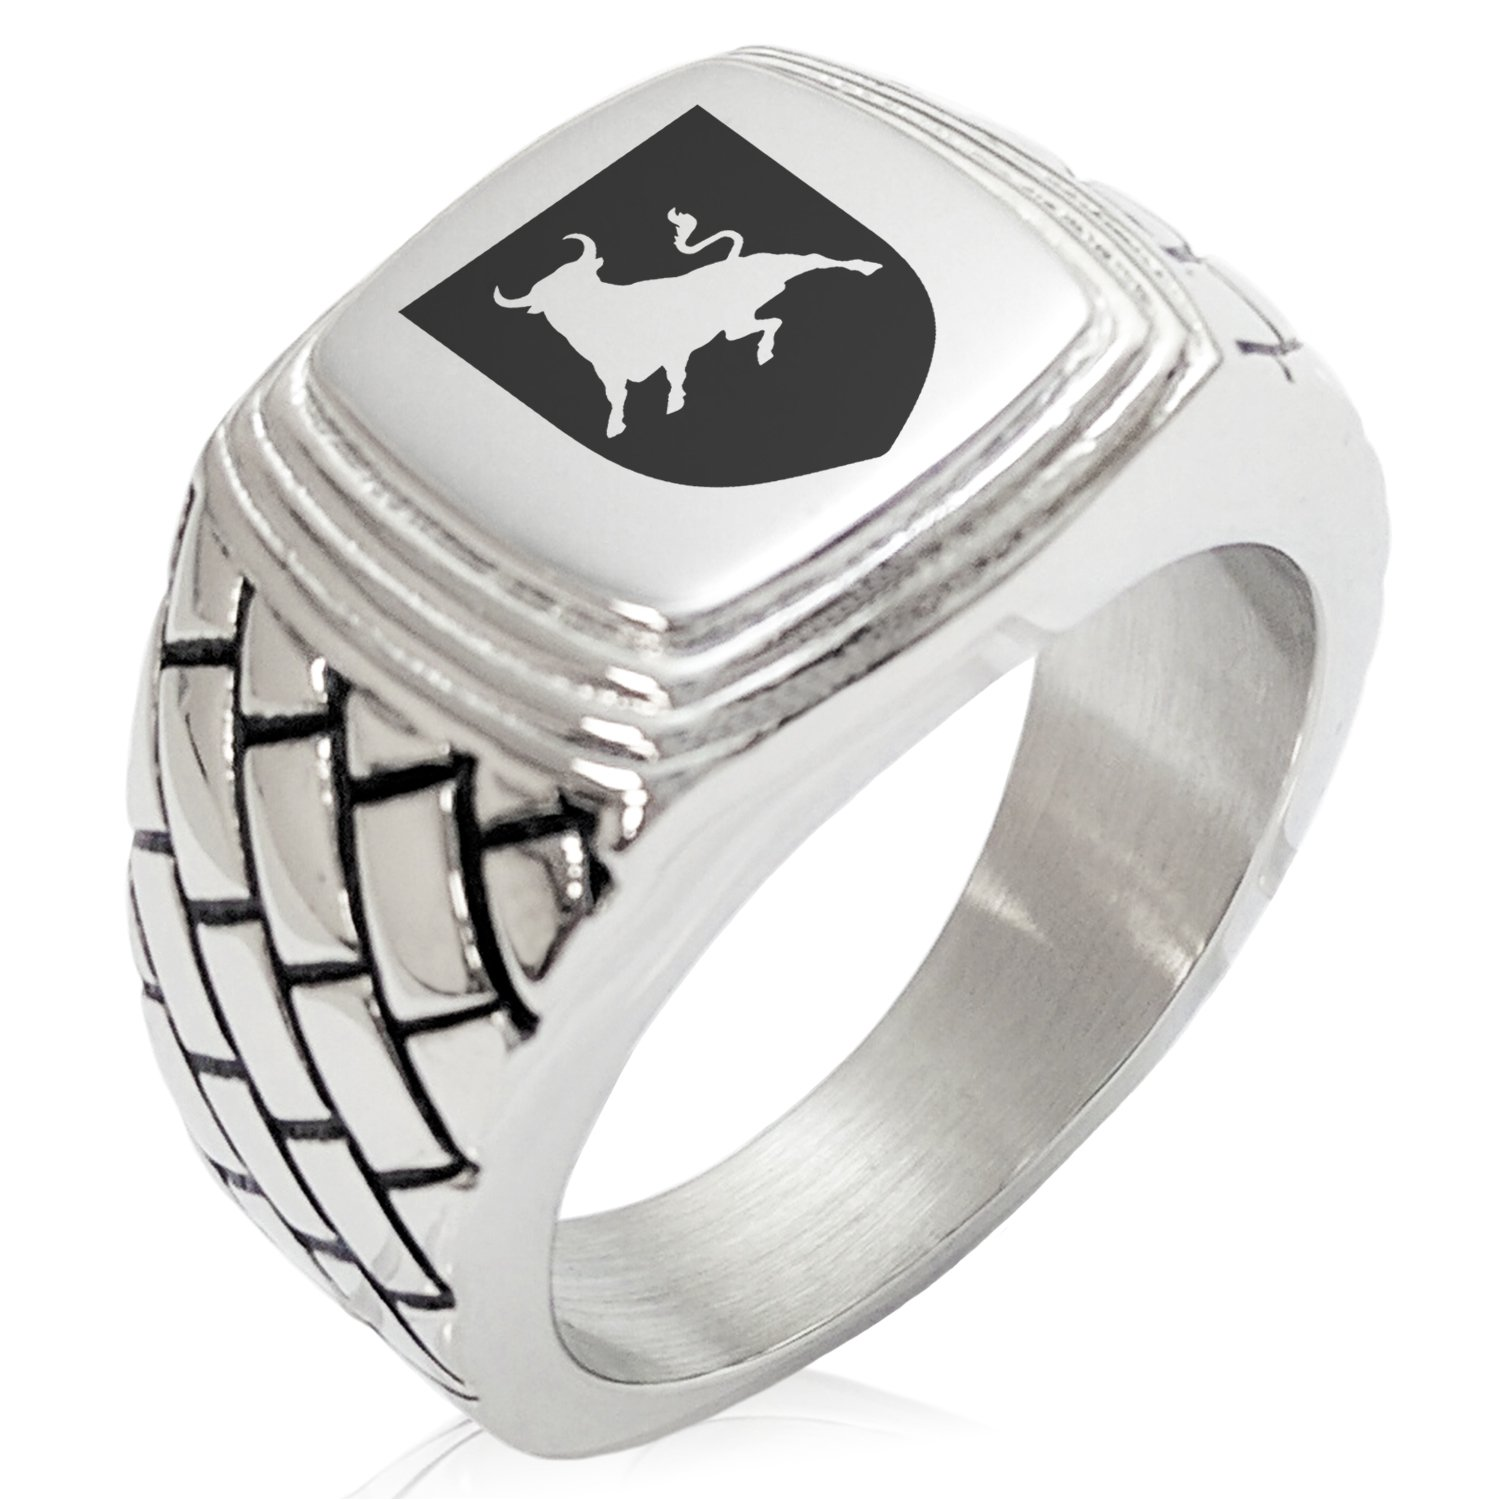 Two-Tone Stainless Steel Bull Bravery Coat of Arms Shield Engraved Geometric Pattern Step-Down Biker Style Polished Ring, Size 11